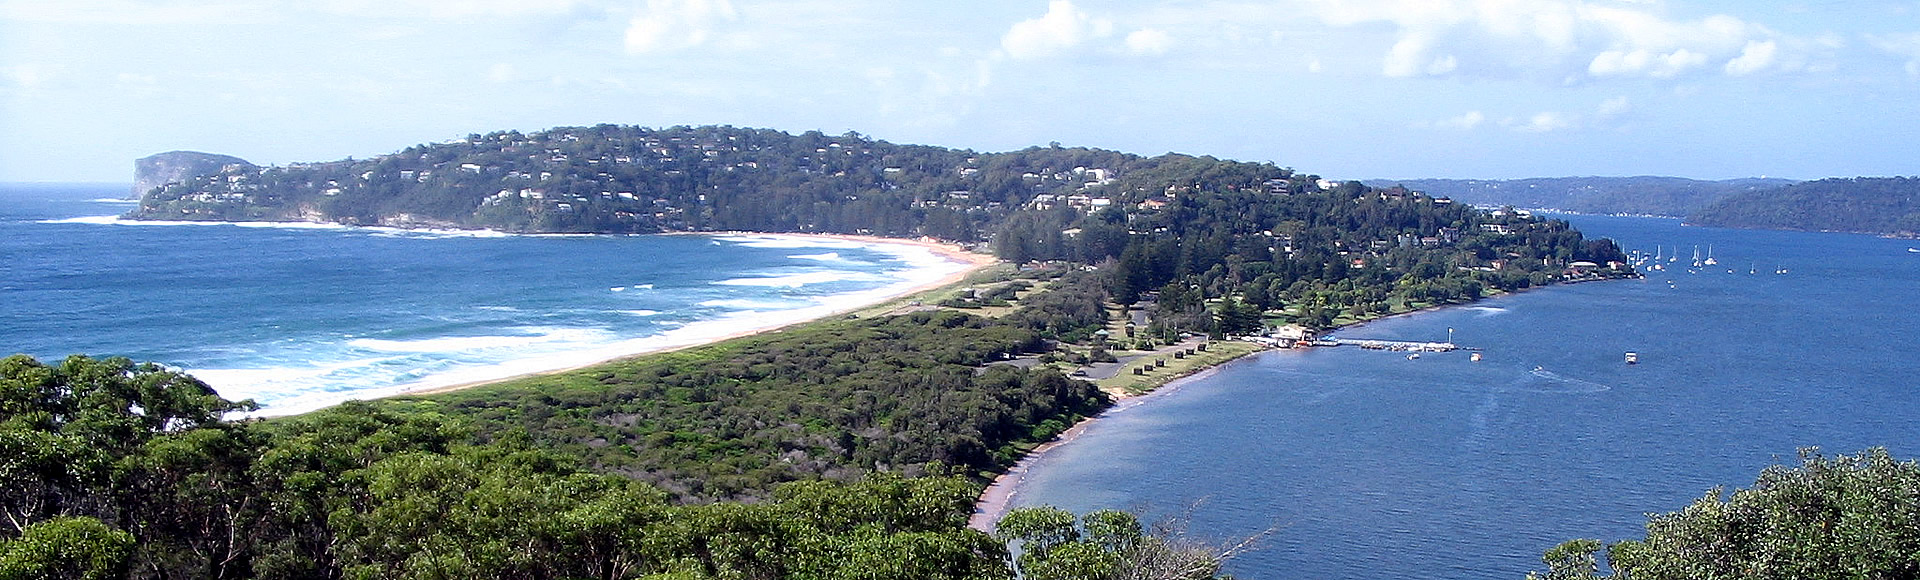 Looking South from Barrenjoey Headland